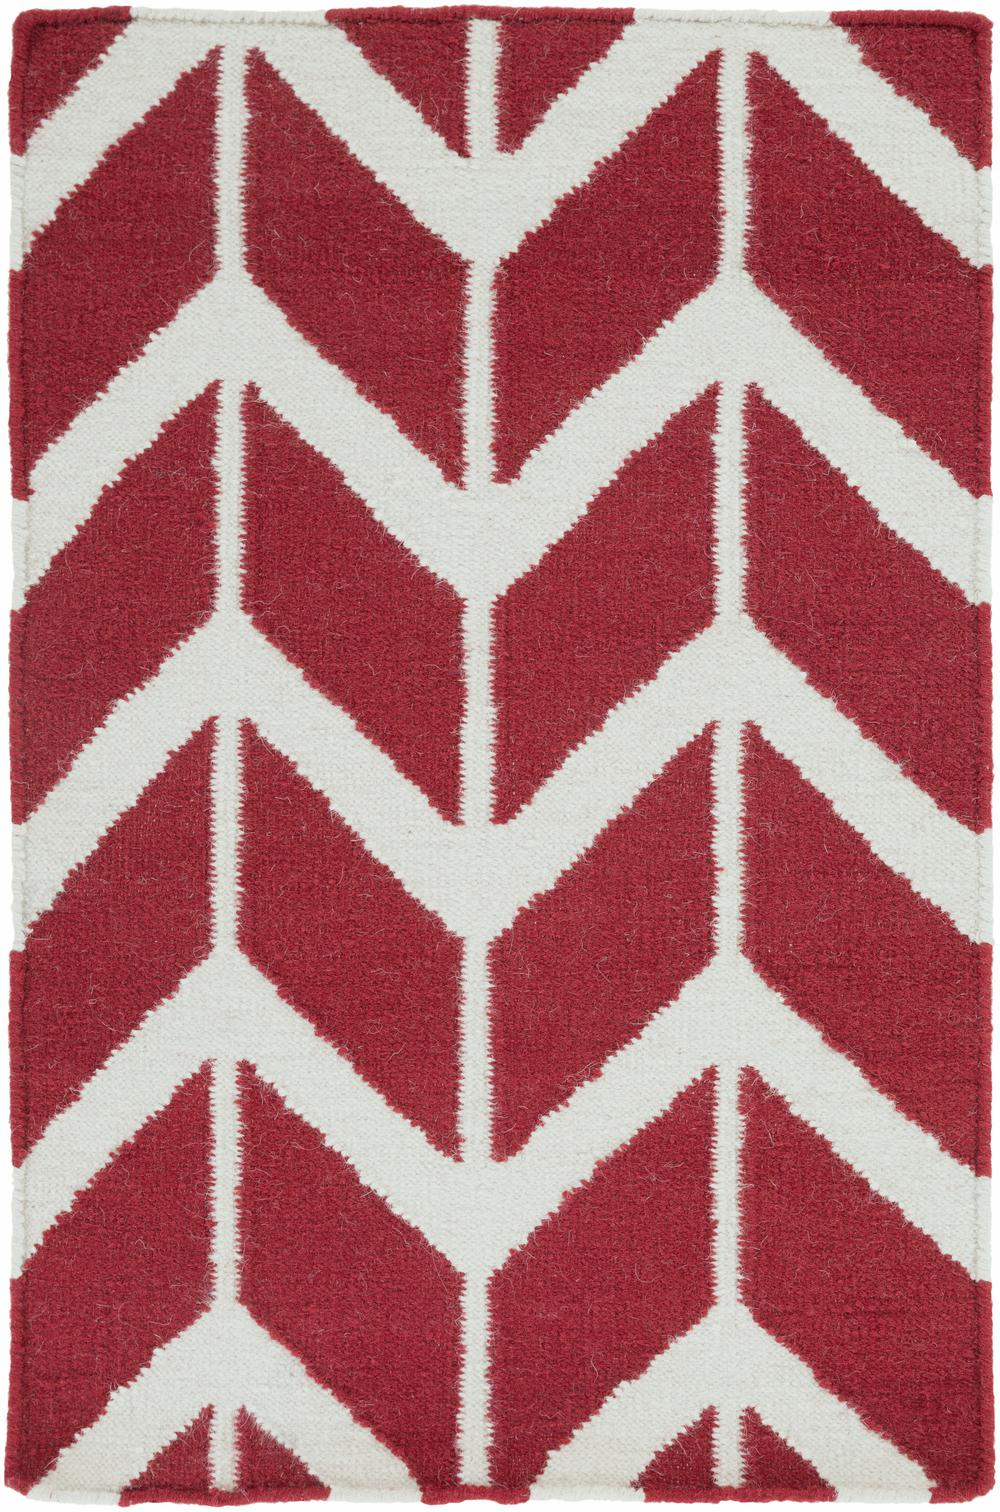 Surya Fallon Fal1053 Red Area Rug Free Shipping